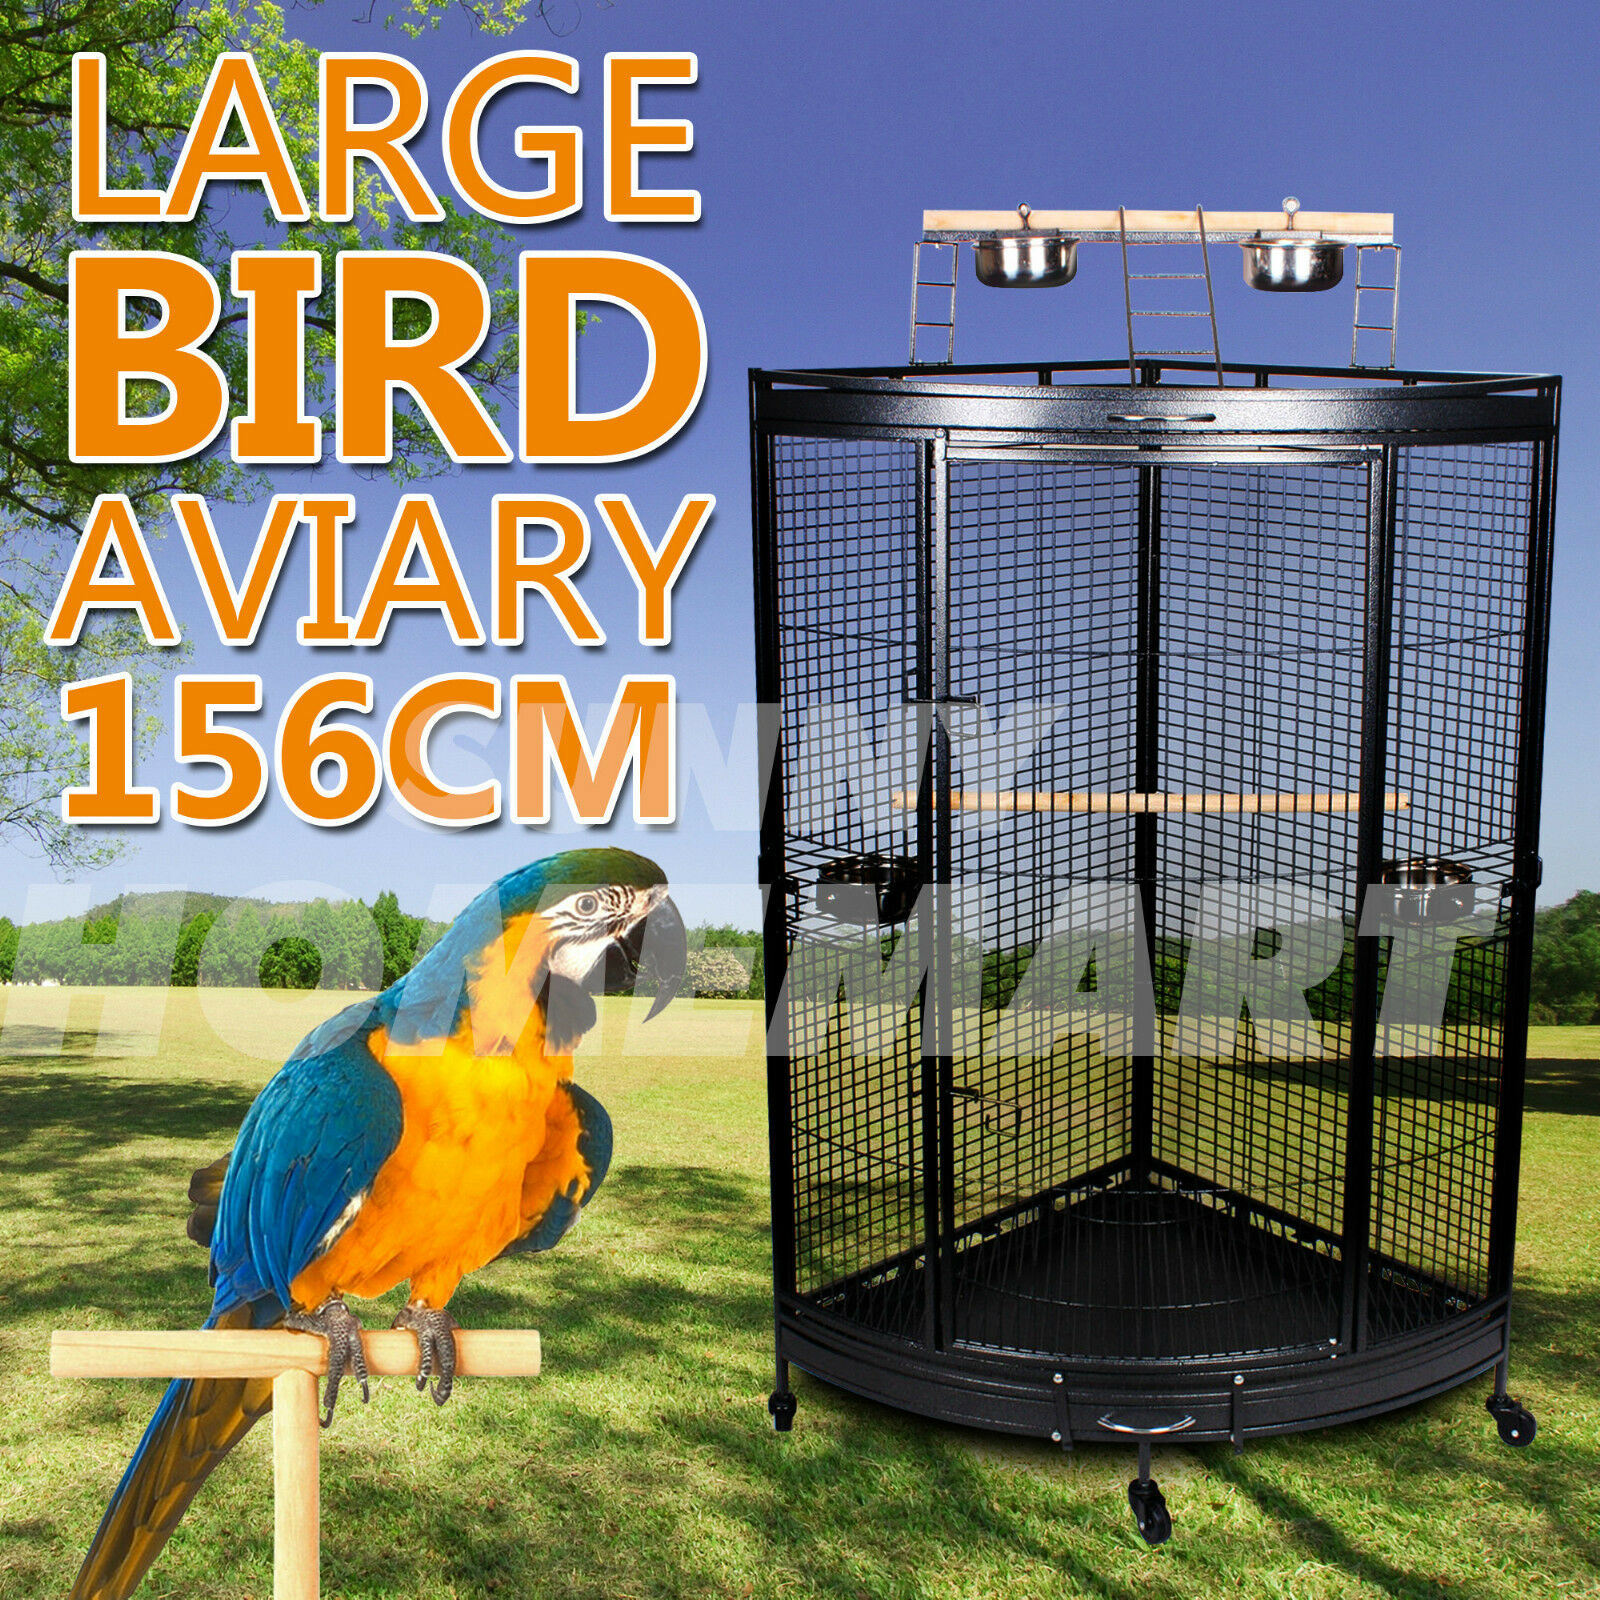 1 x New Large Corner Parrot Aviary Bird Cage With Play Roof Top Ladder Wheels